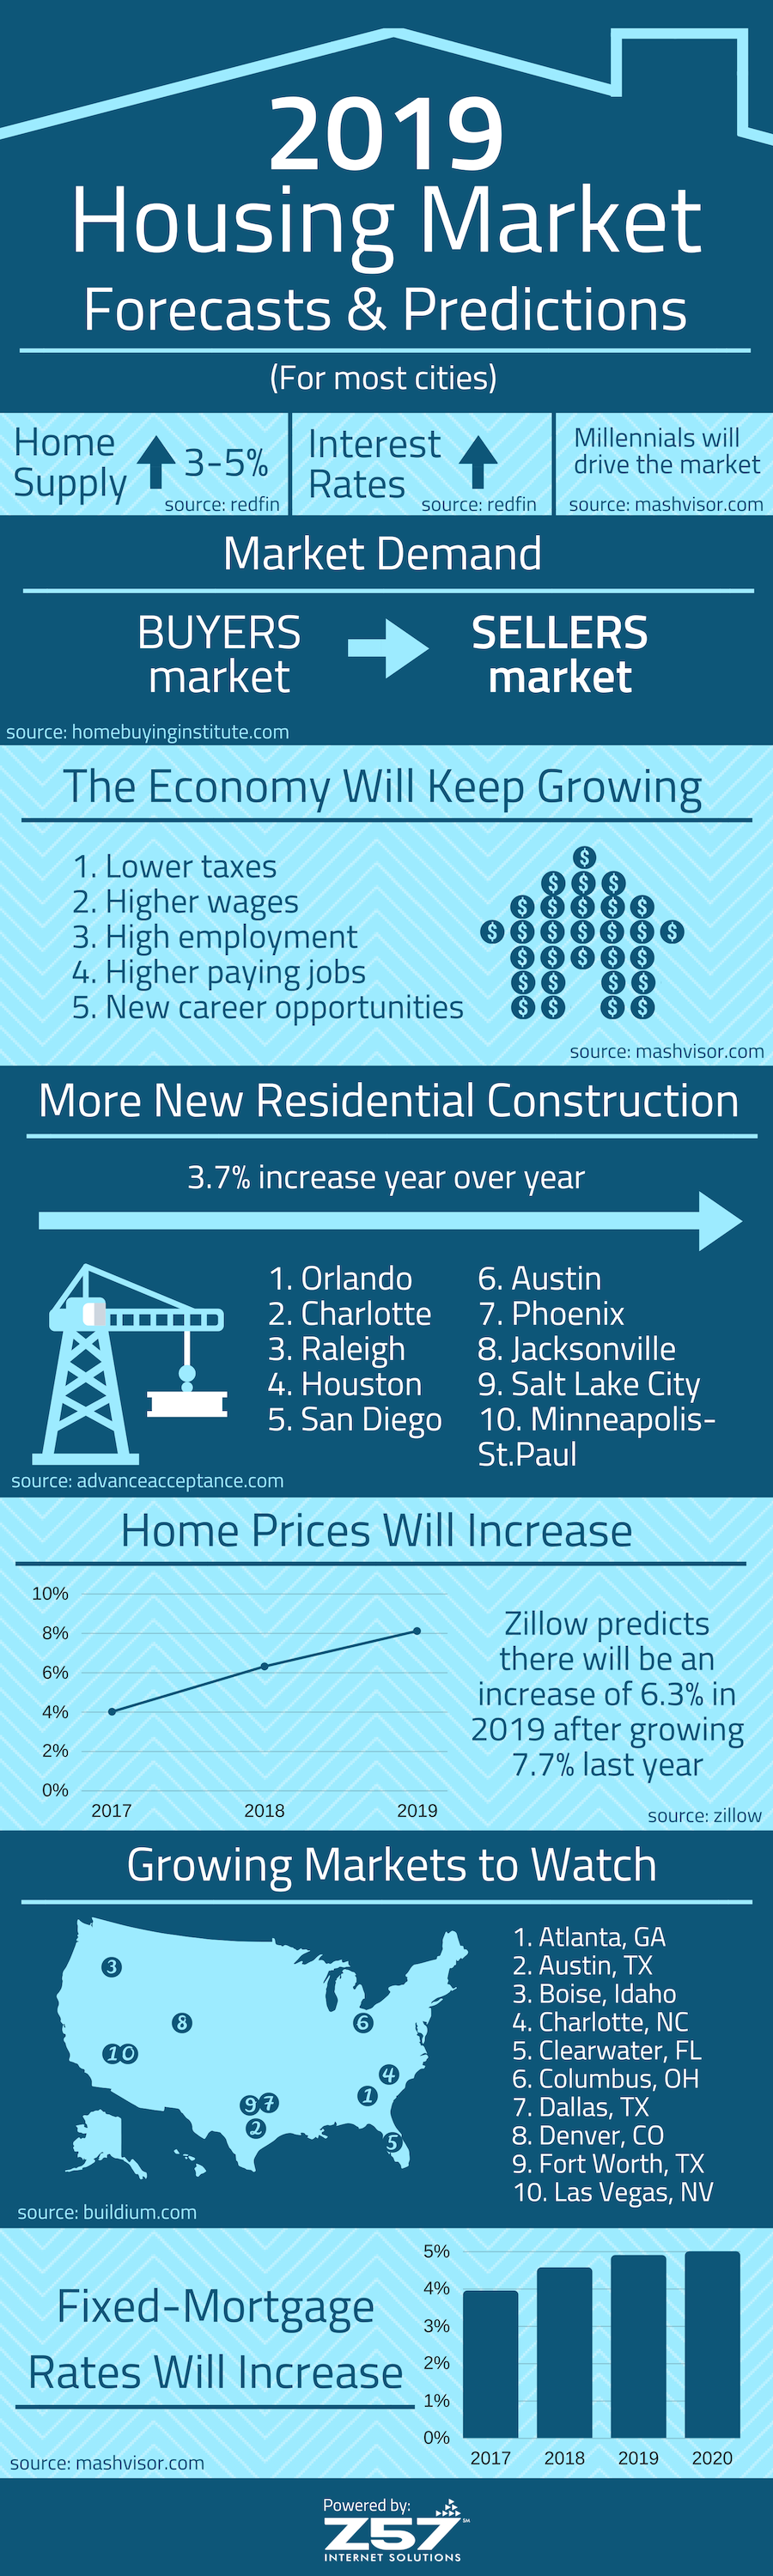 Pin By Paul Rawson On Inforgraphic Ideas Real Estate Career Real Estate Marketing Housing Market